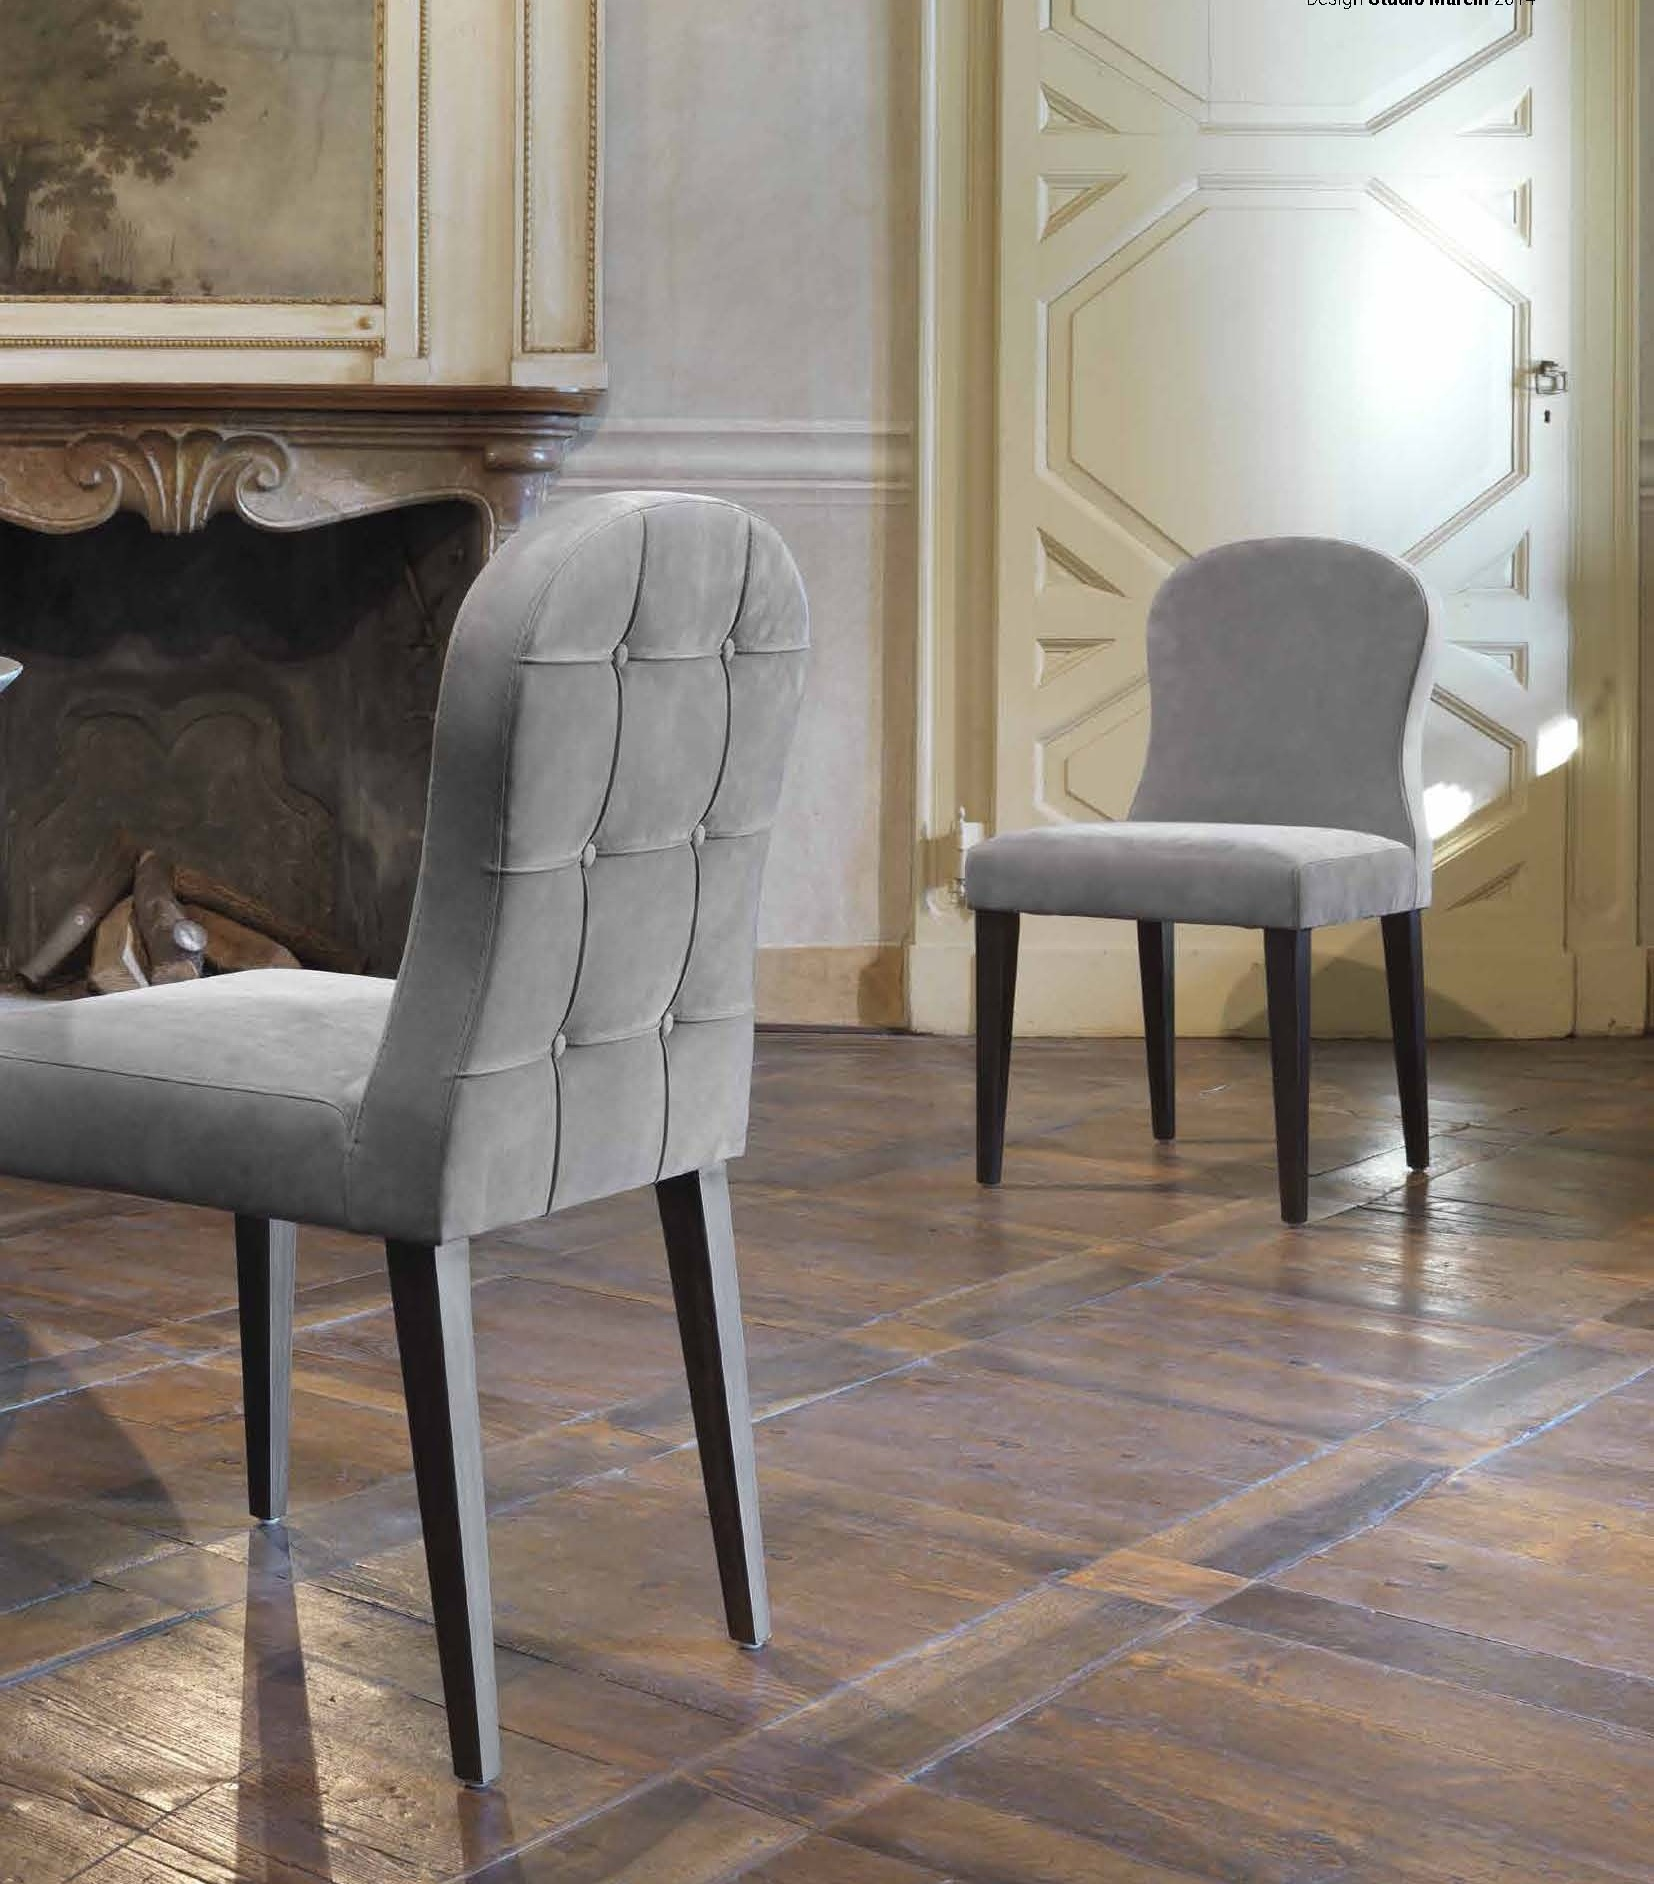 Chair with upholstered bell giulio marelli